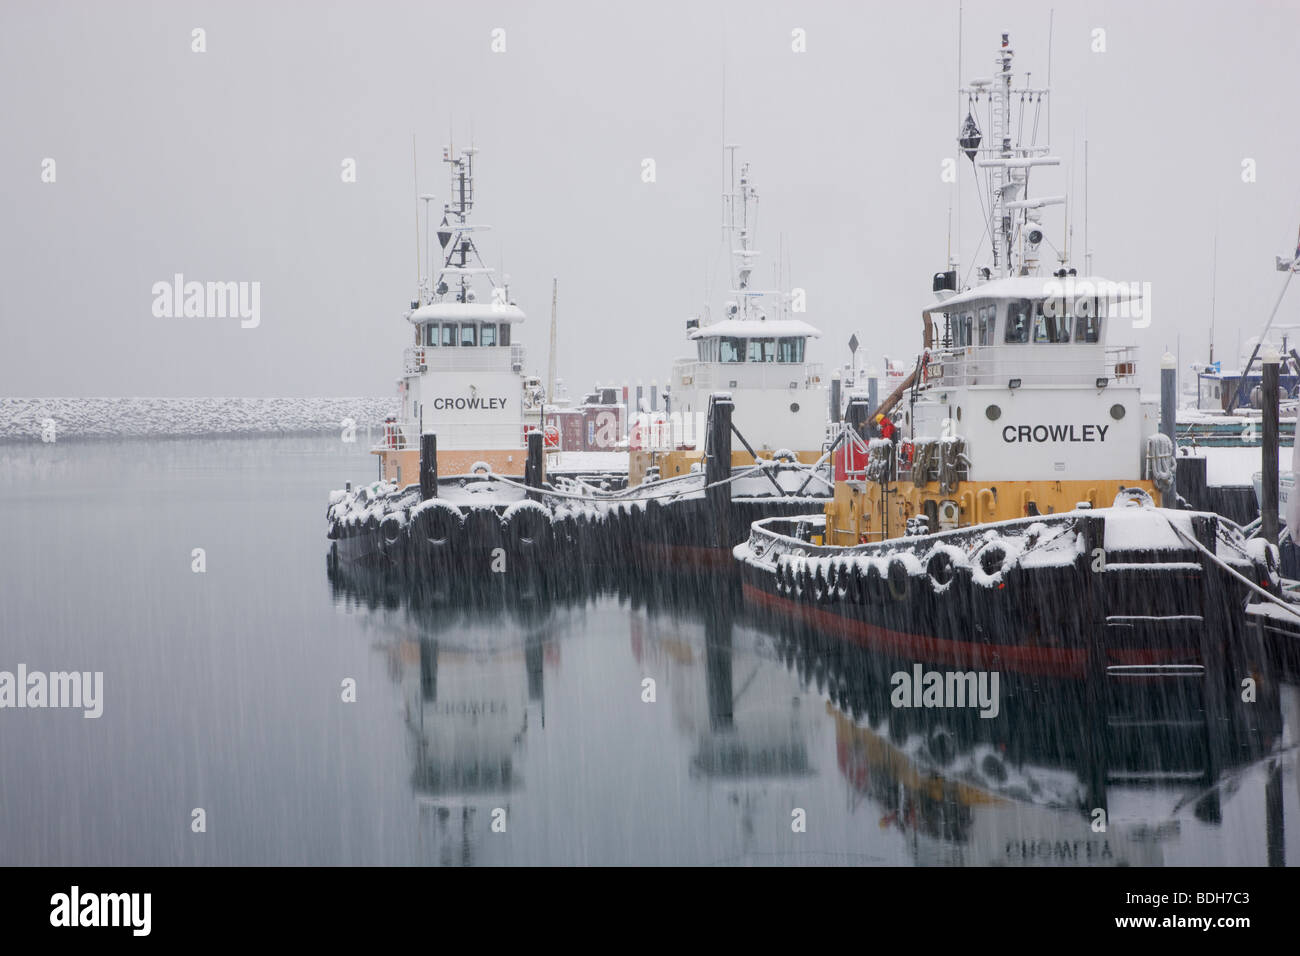 Crowley Tugs in the Seward Boat Harbor during a winter snow storm, Alaska. - Stock Image